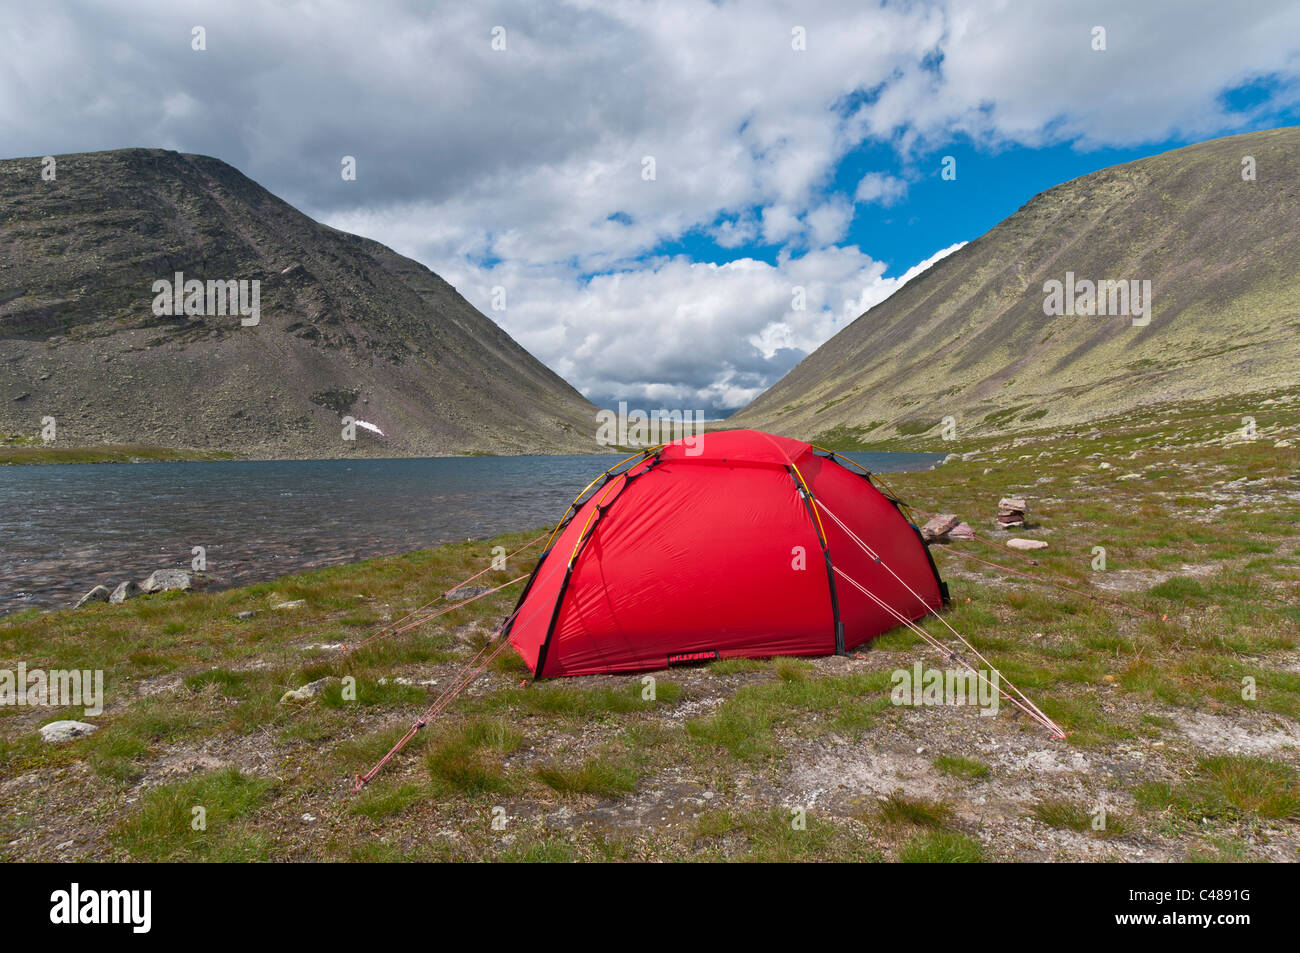 Zelt an einem Bergsee, Rendalen, Hedmark, Norwegen, Tent, Mountain lake, Norway - Stock Image